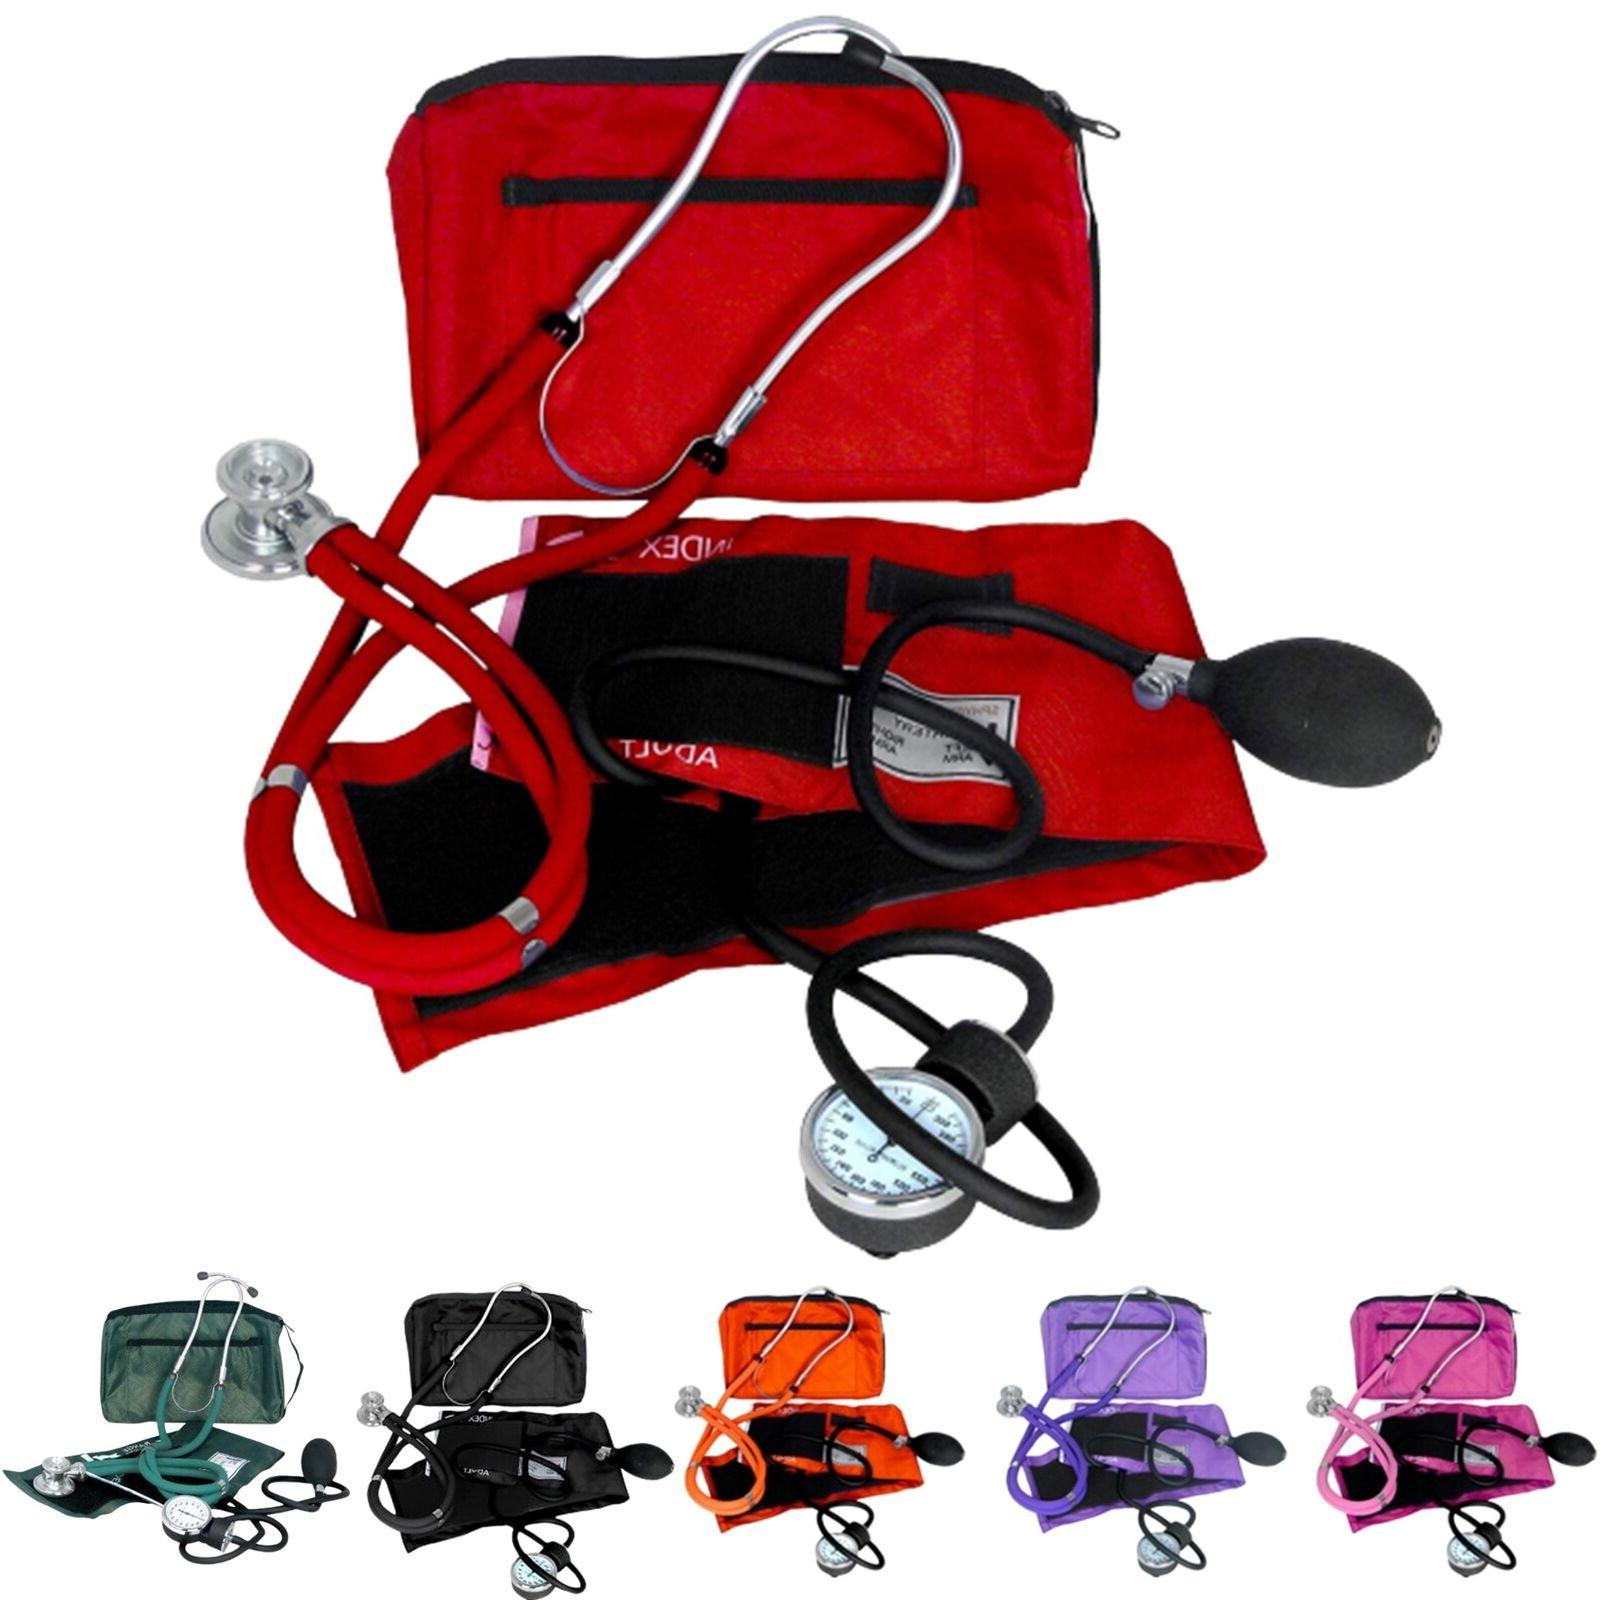 professional blood pressure kit and sprague rappaport